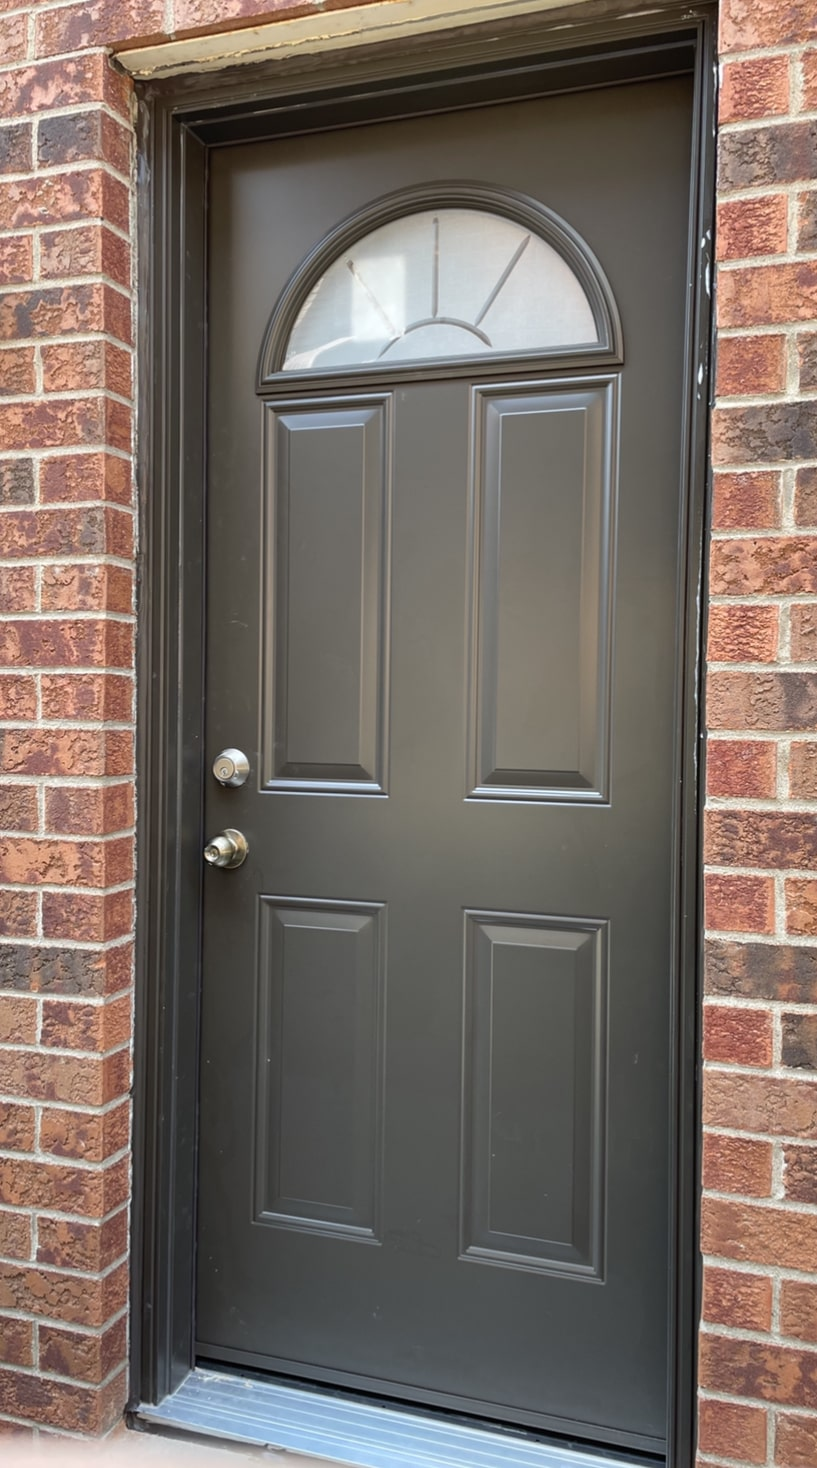 New side door replacement in Richmond Hill